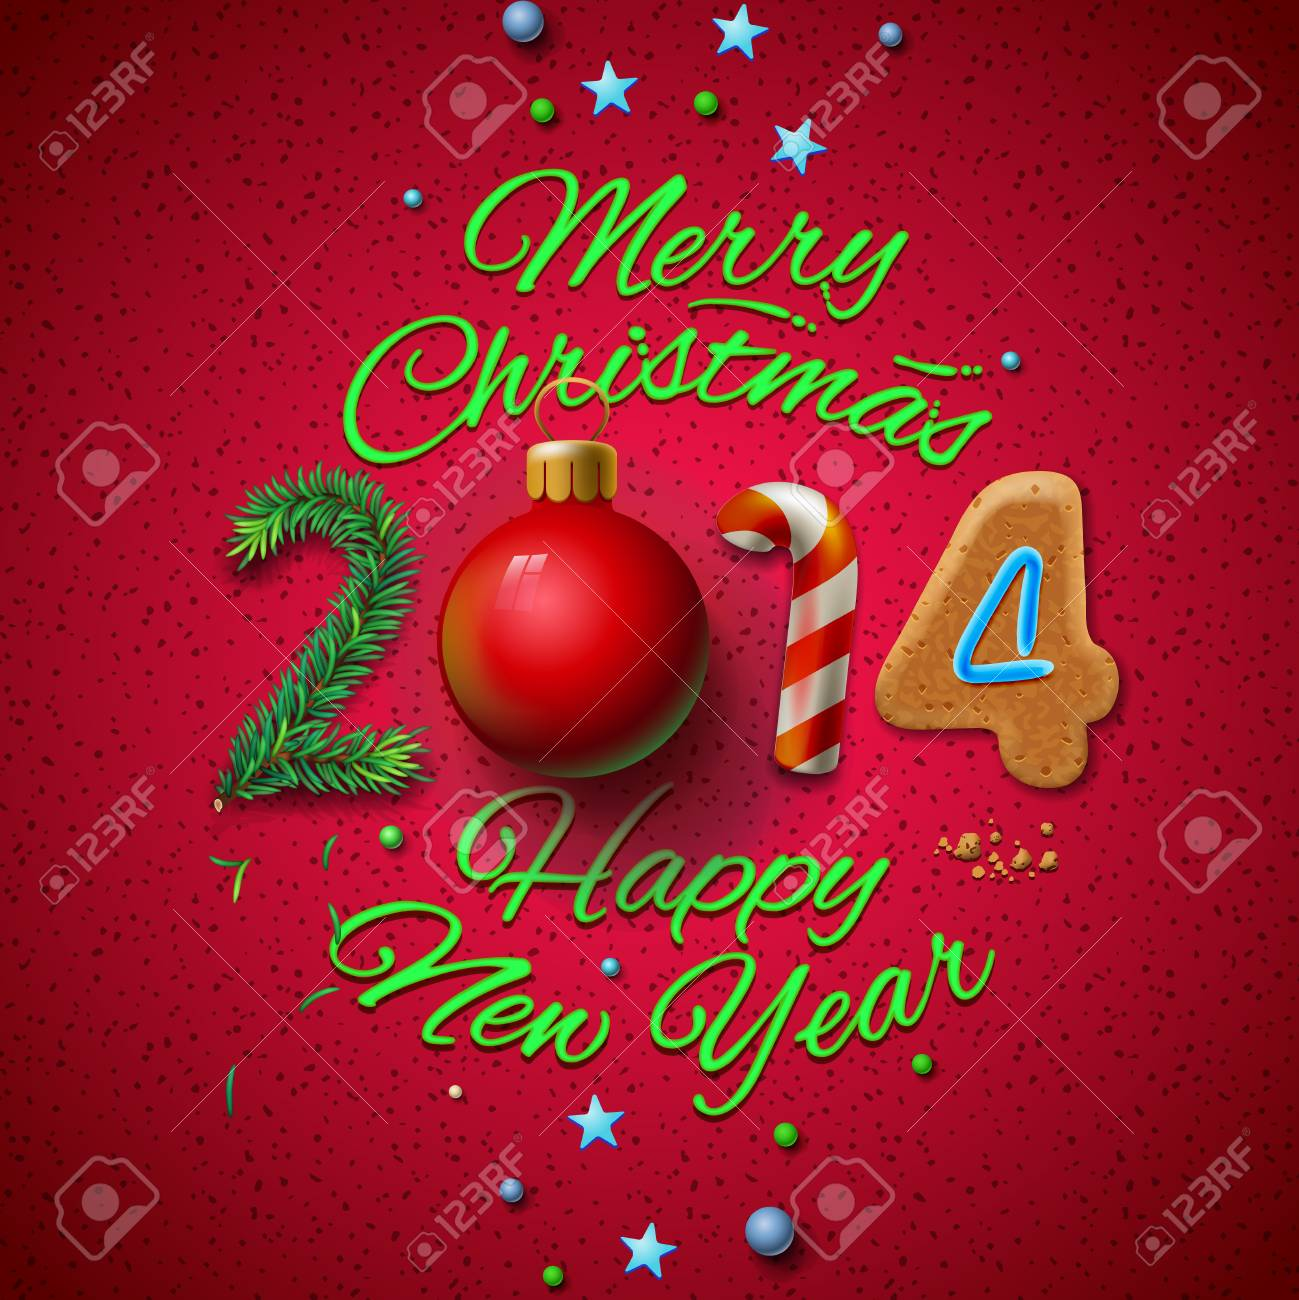 Happy new year 2014 greeting card vector eps10 illustration happy new year 2014 greeting card vector eps10 illustration stock vector 24200736 m4hsunfo